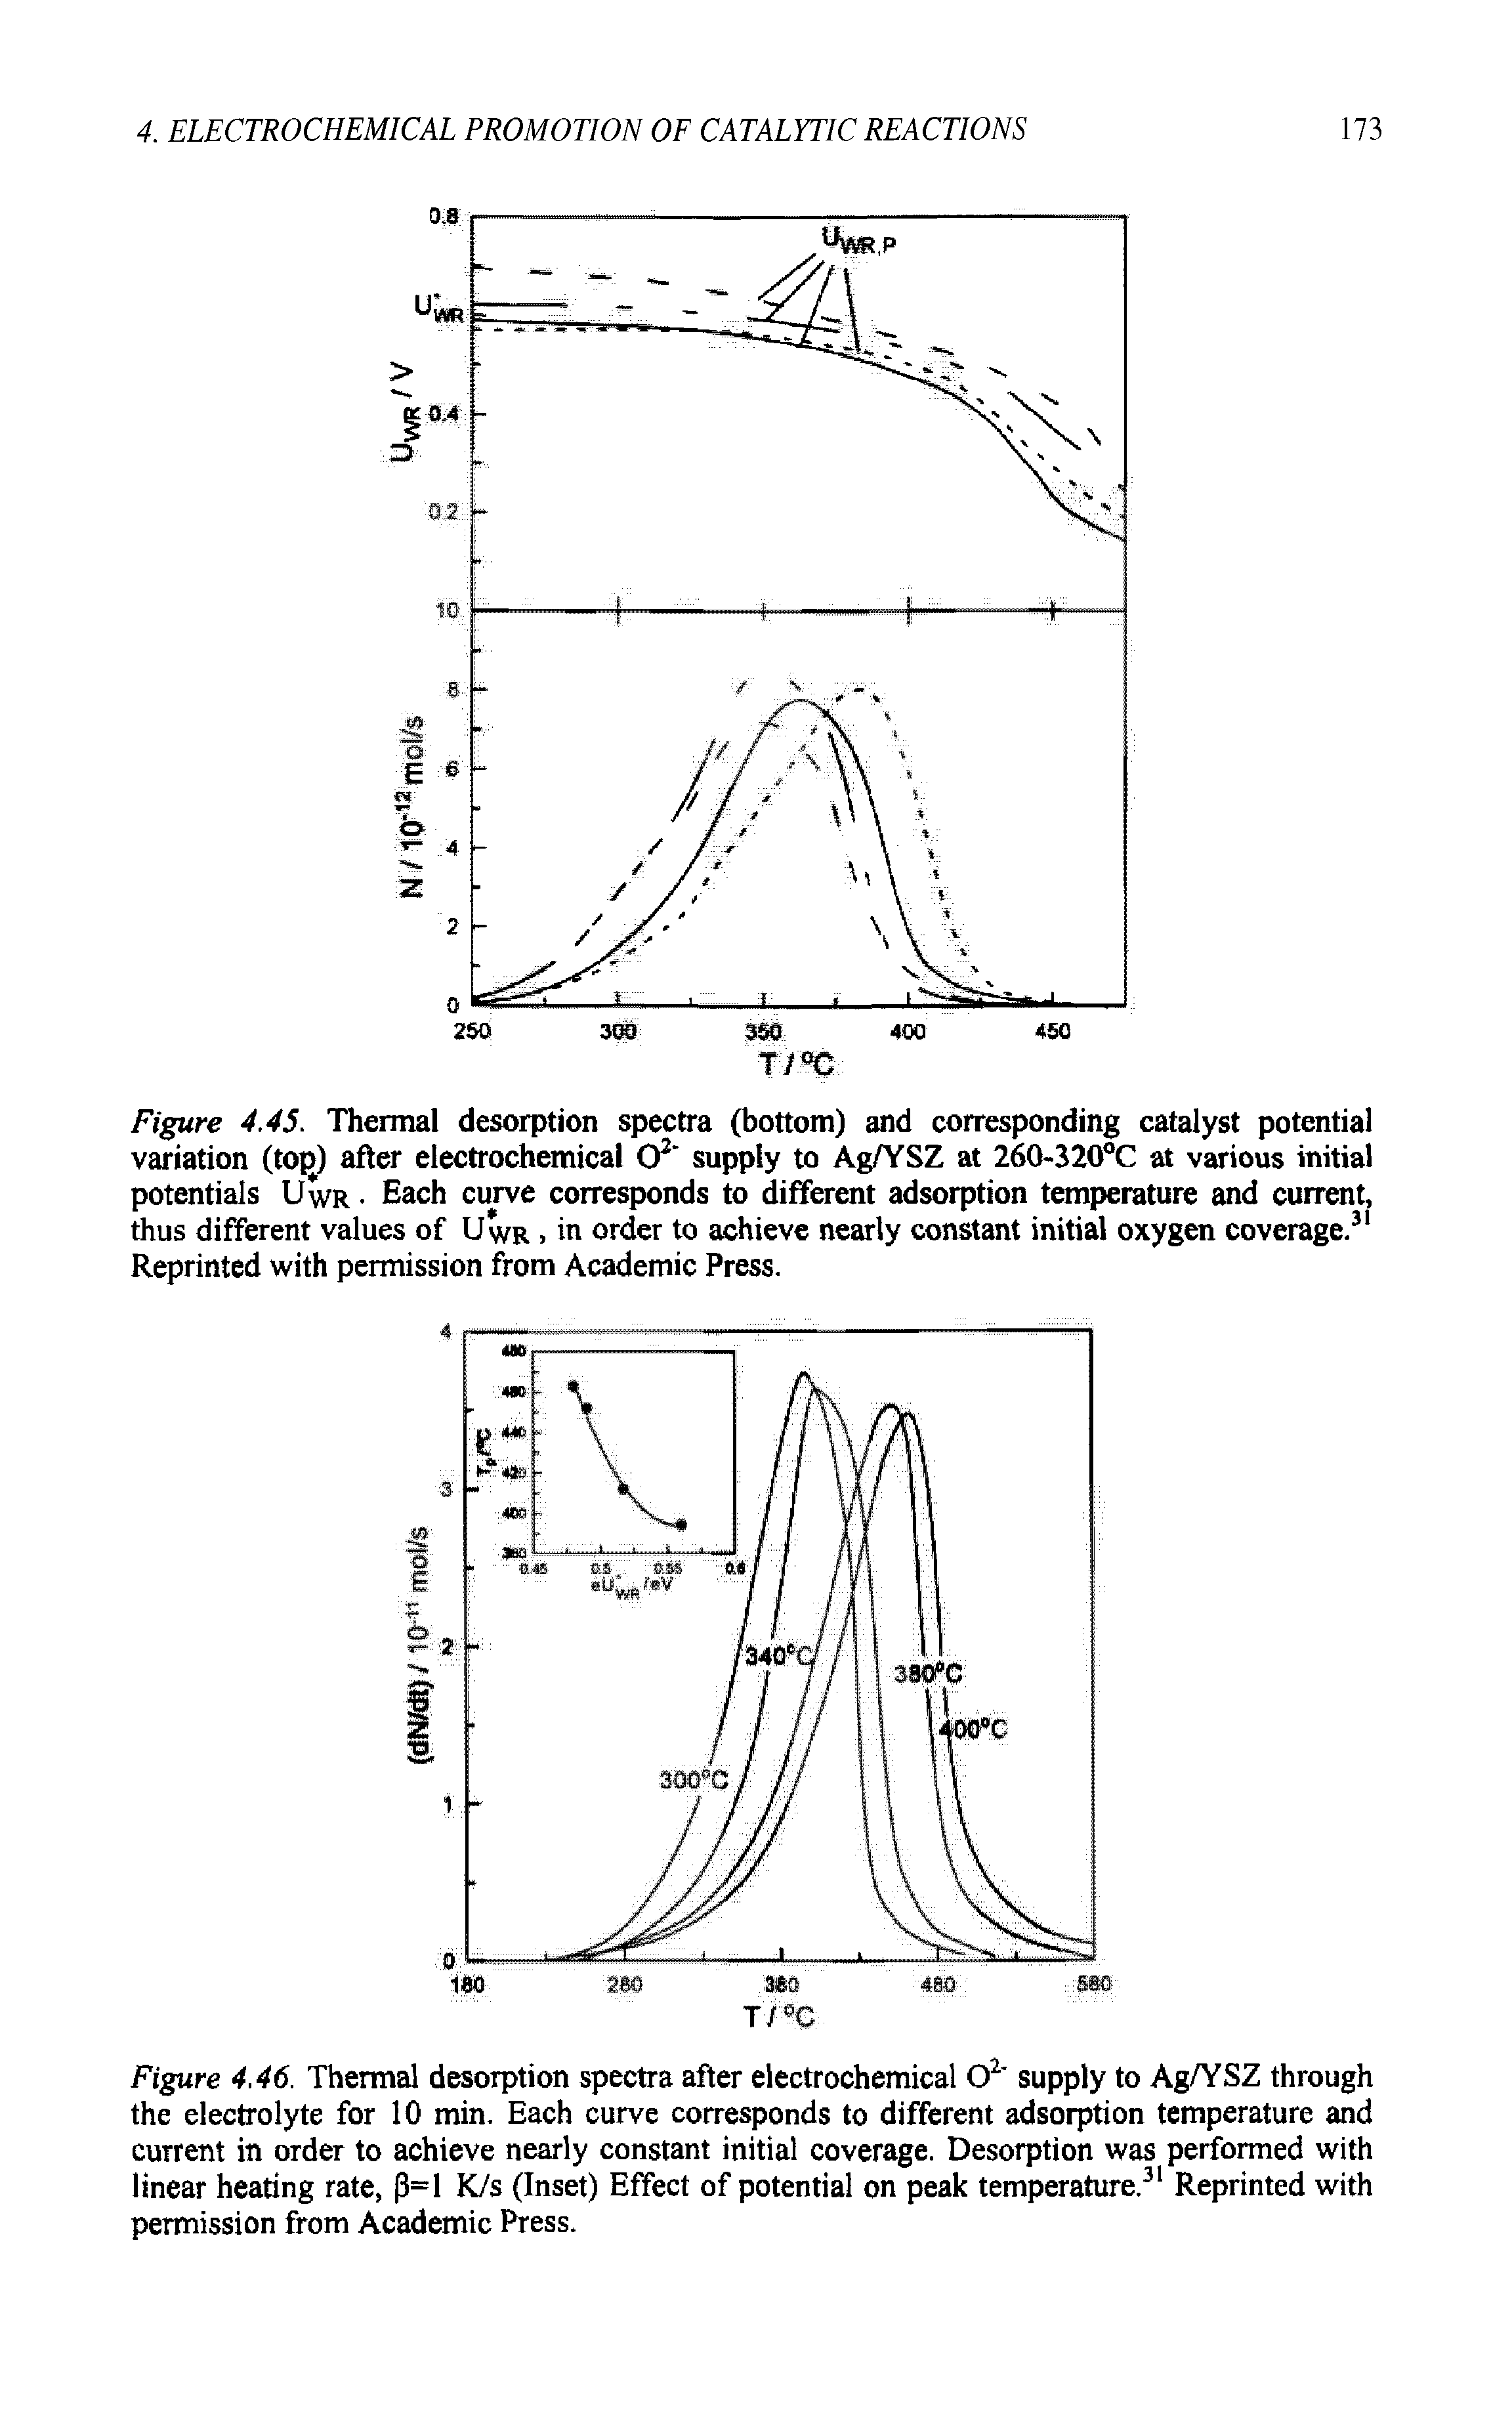 "Figure 4.45. <a href=""/info/desorption_spectra_co_thermal"">Thermal desorption spectra</a> (bottom) and corresponding catalyst potential variation (top) after electrochemical O2 supply to Ag/YSZ at 260-320°C at various initial potentials Uwr Each curve corresponds to different <a href=""/info/adsorption_temperature_and"">adsorption temperature</a> and current, thus different values of Uwr, in order to achieve nearly <a href=""/info/constant_of_initiation"">constant initial</a> <a href=""/info/oxygen_coverage"">oxygen coverage</a>.31 Reprinted with permission from Academic Press."